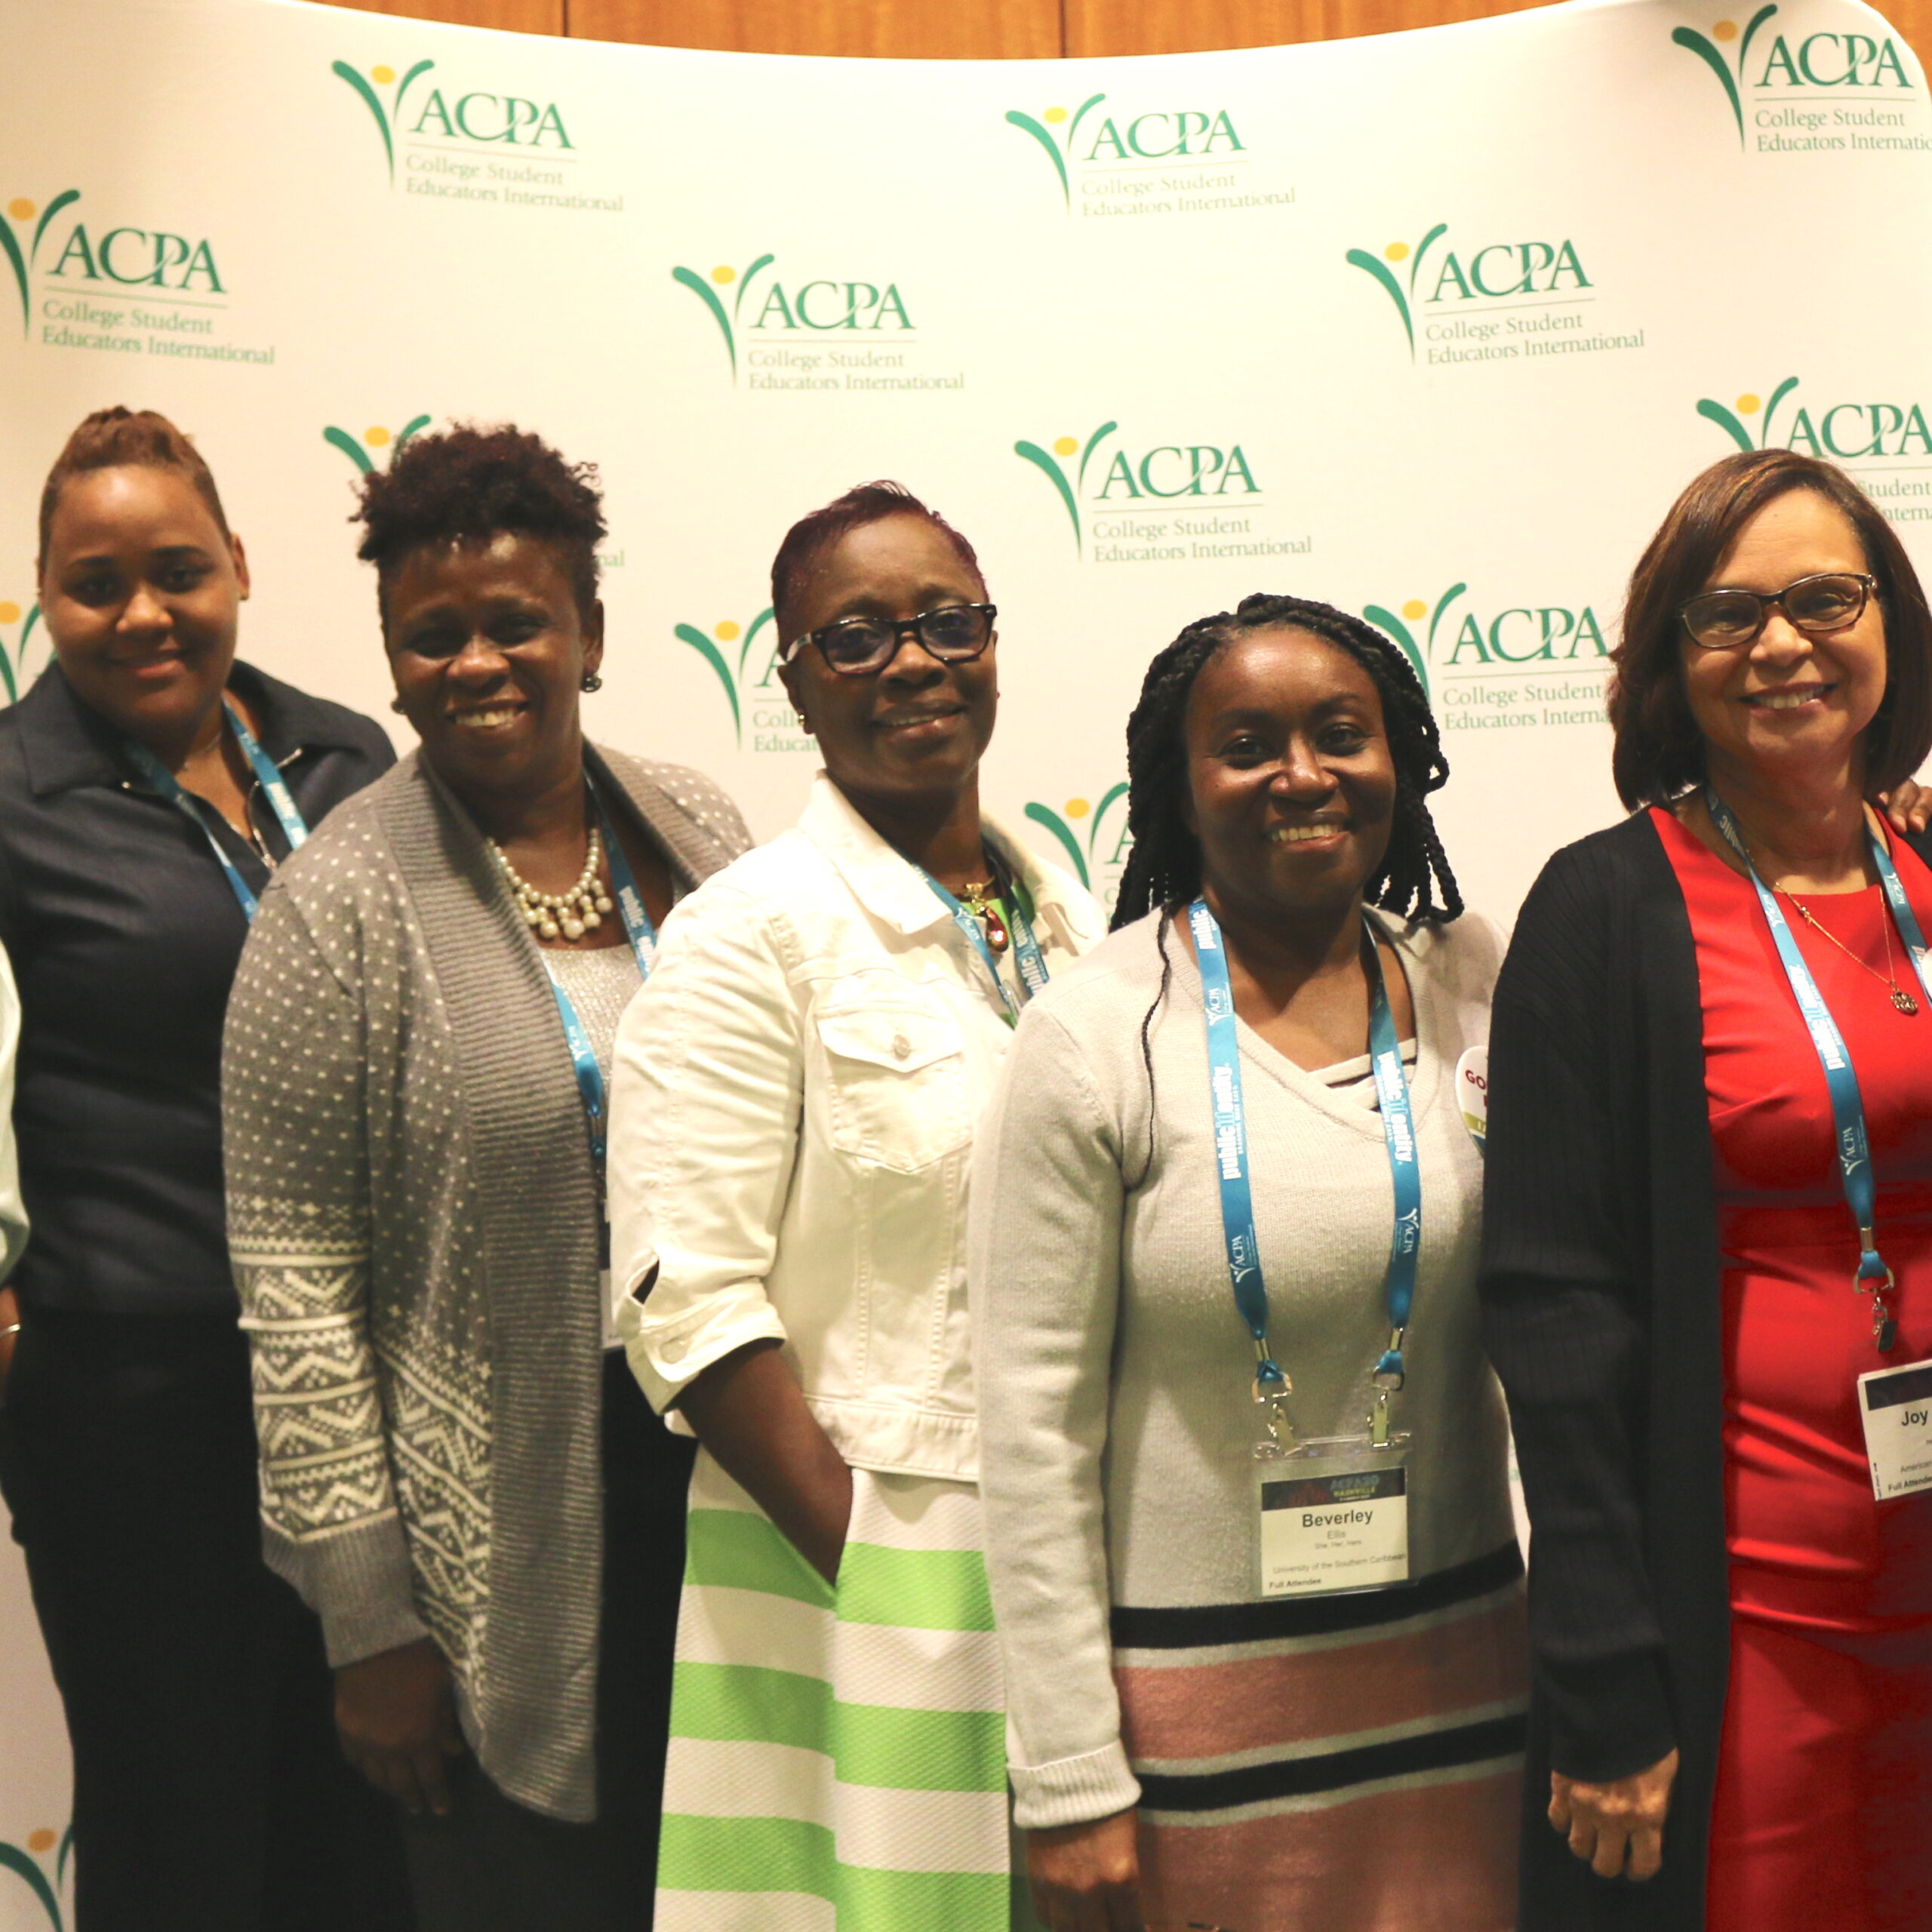 5 Caribbean Tertiary International Division members posing for a photo in front of the ACPA logo